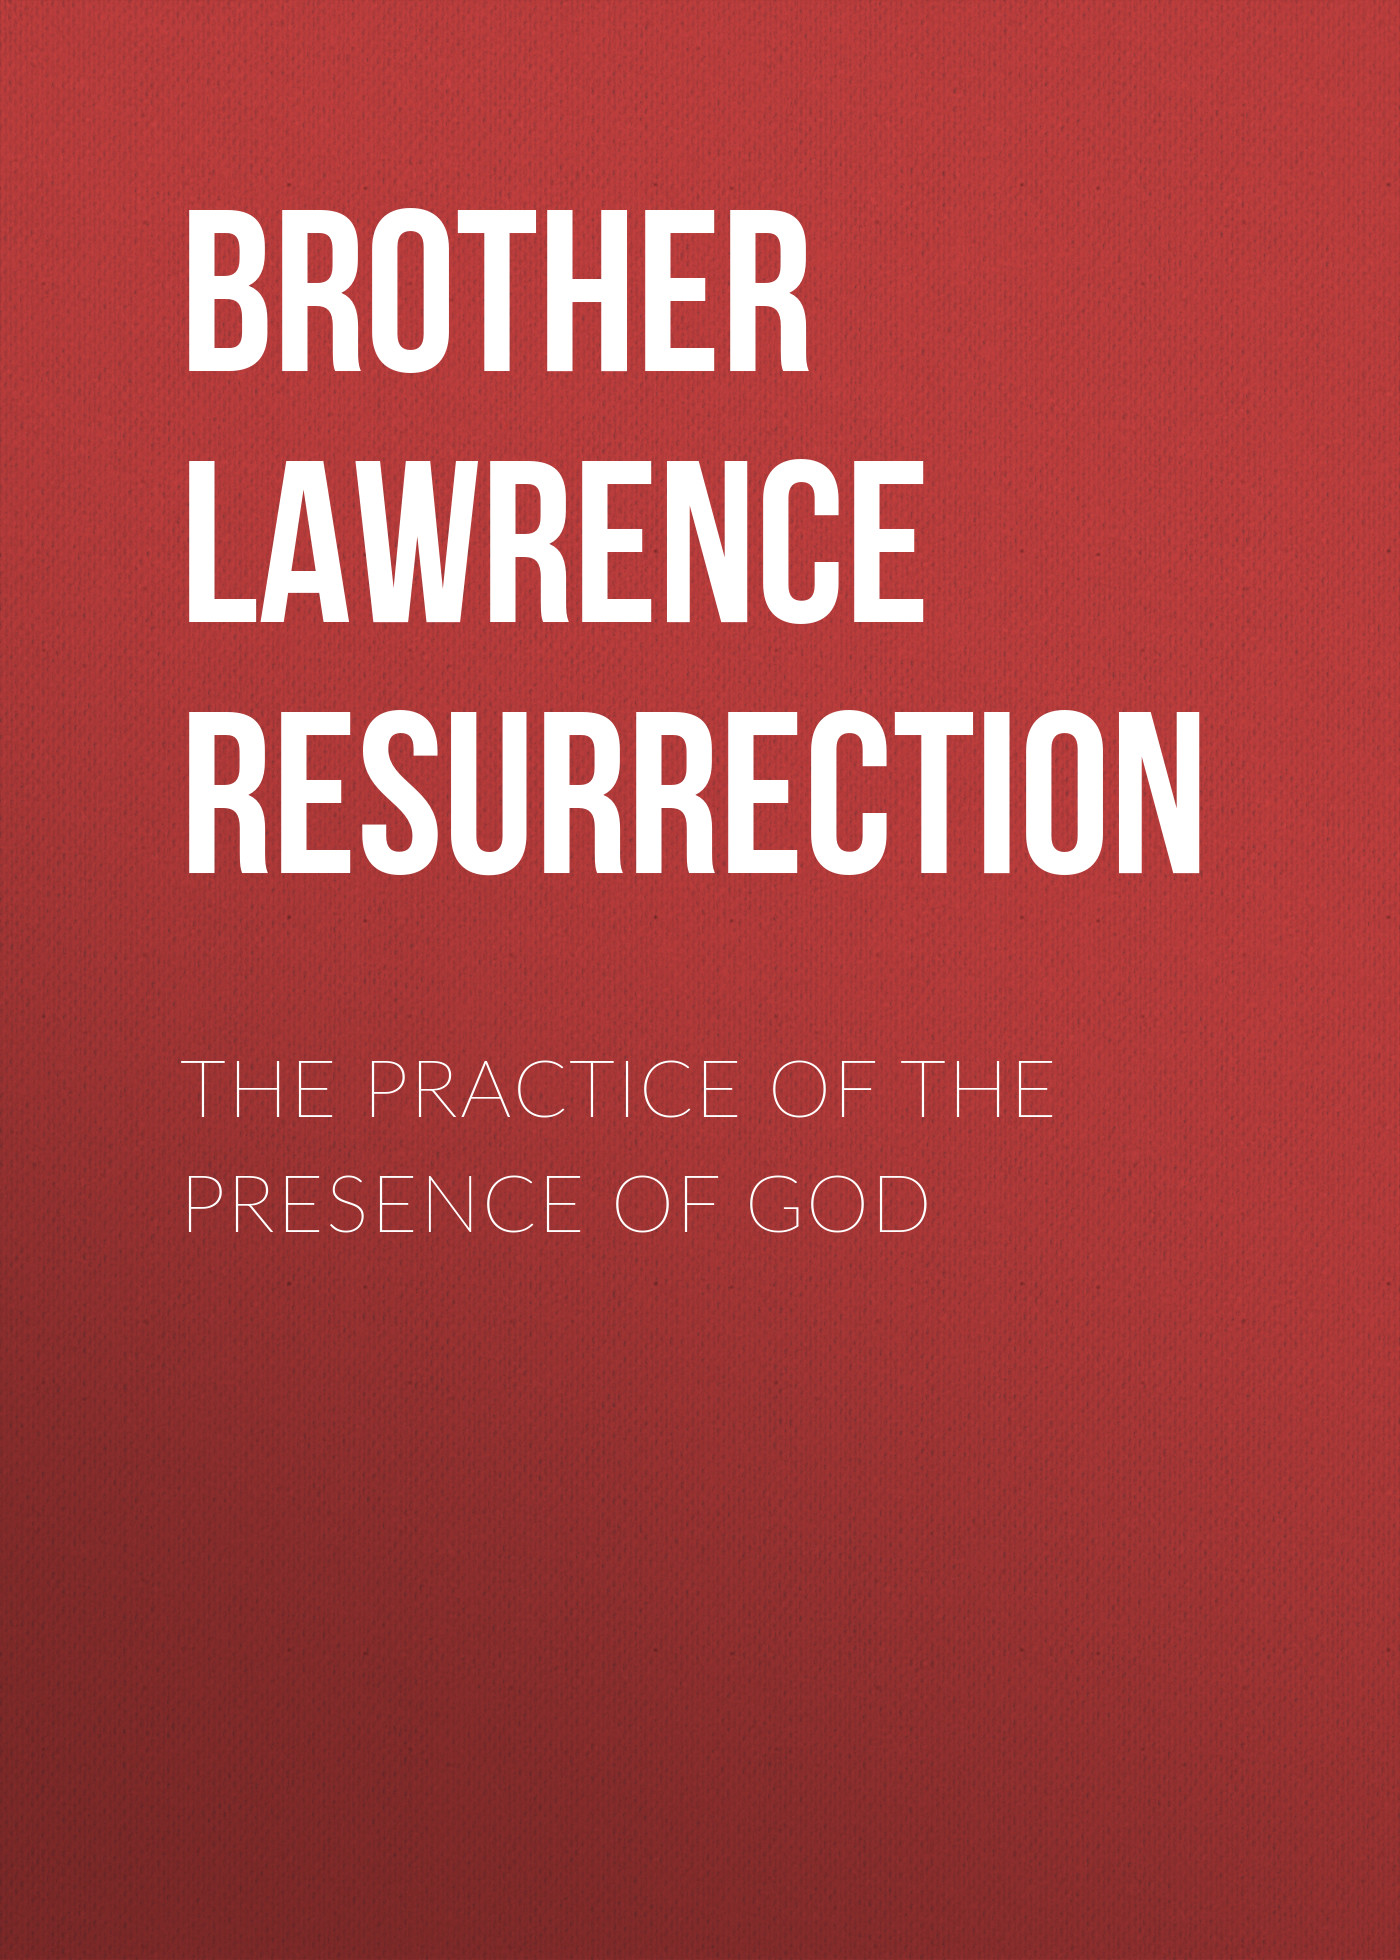 Brother Lawrence of the Resurrection The Practice of the Presence of God batman the resurrection of ra s al ghul